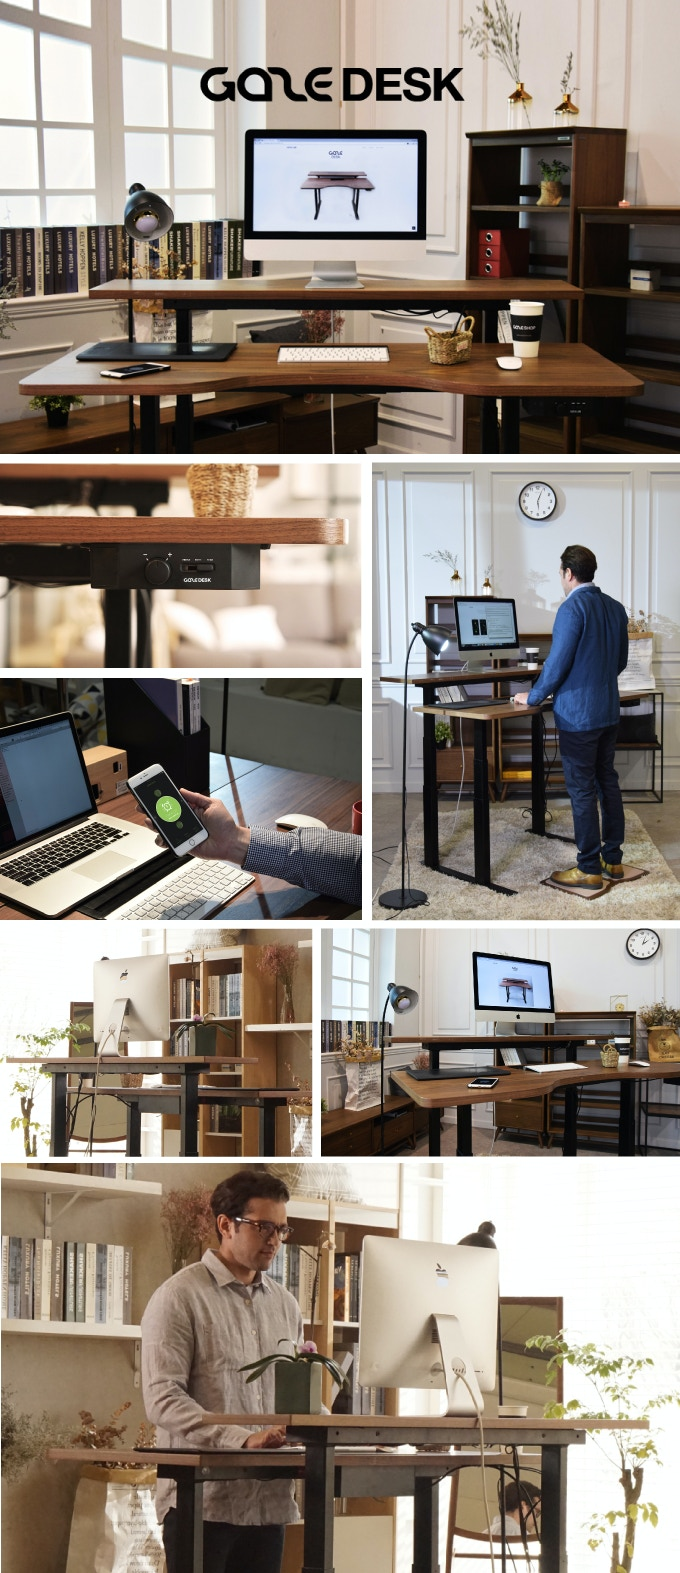 (See below for full details.) If you want a desk with a unique look and  advanced features, go for a dual lift smart model with a natural wood  surface.